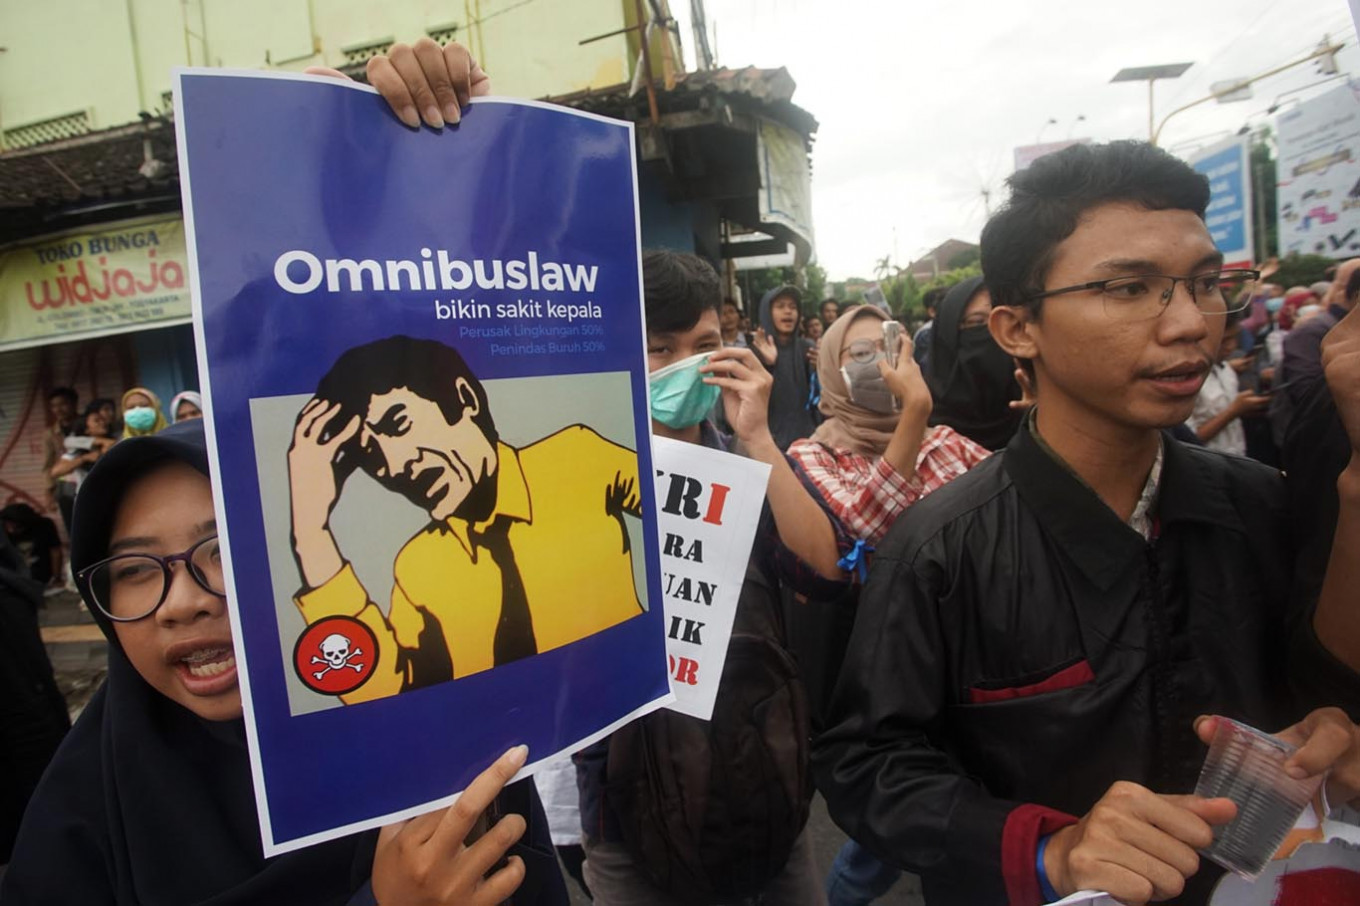 PDI-P, NasDem call to remove labor provisions from omnibus jobs bill